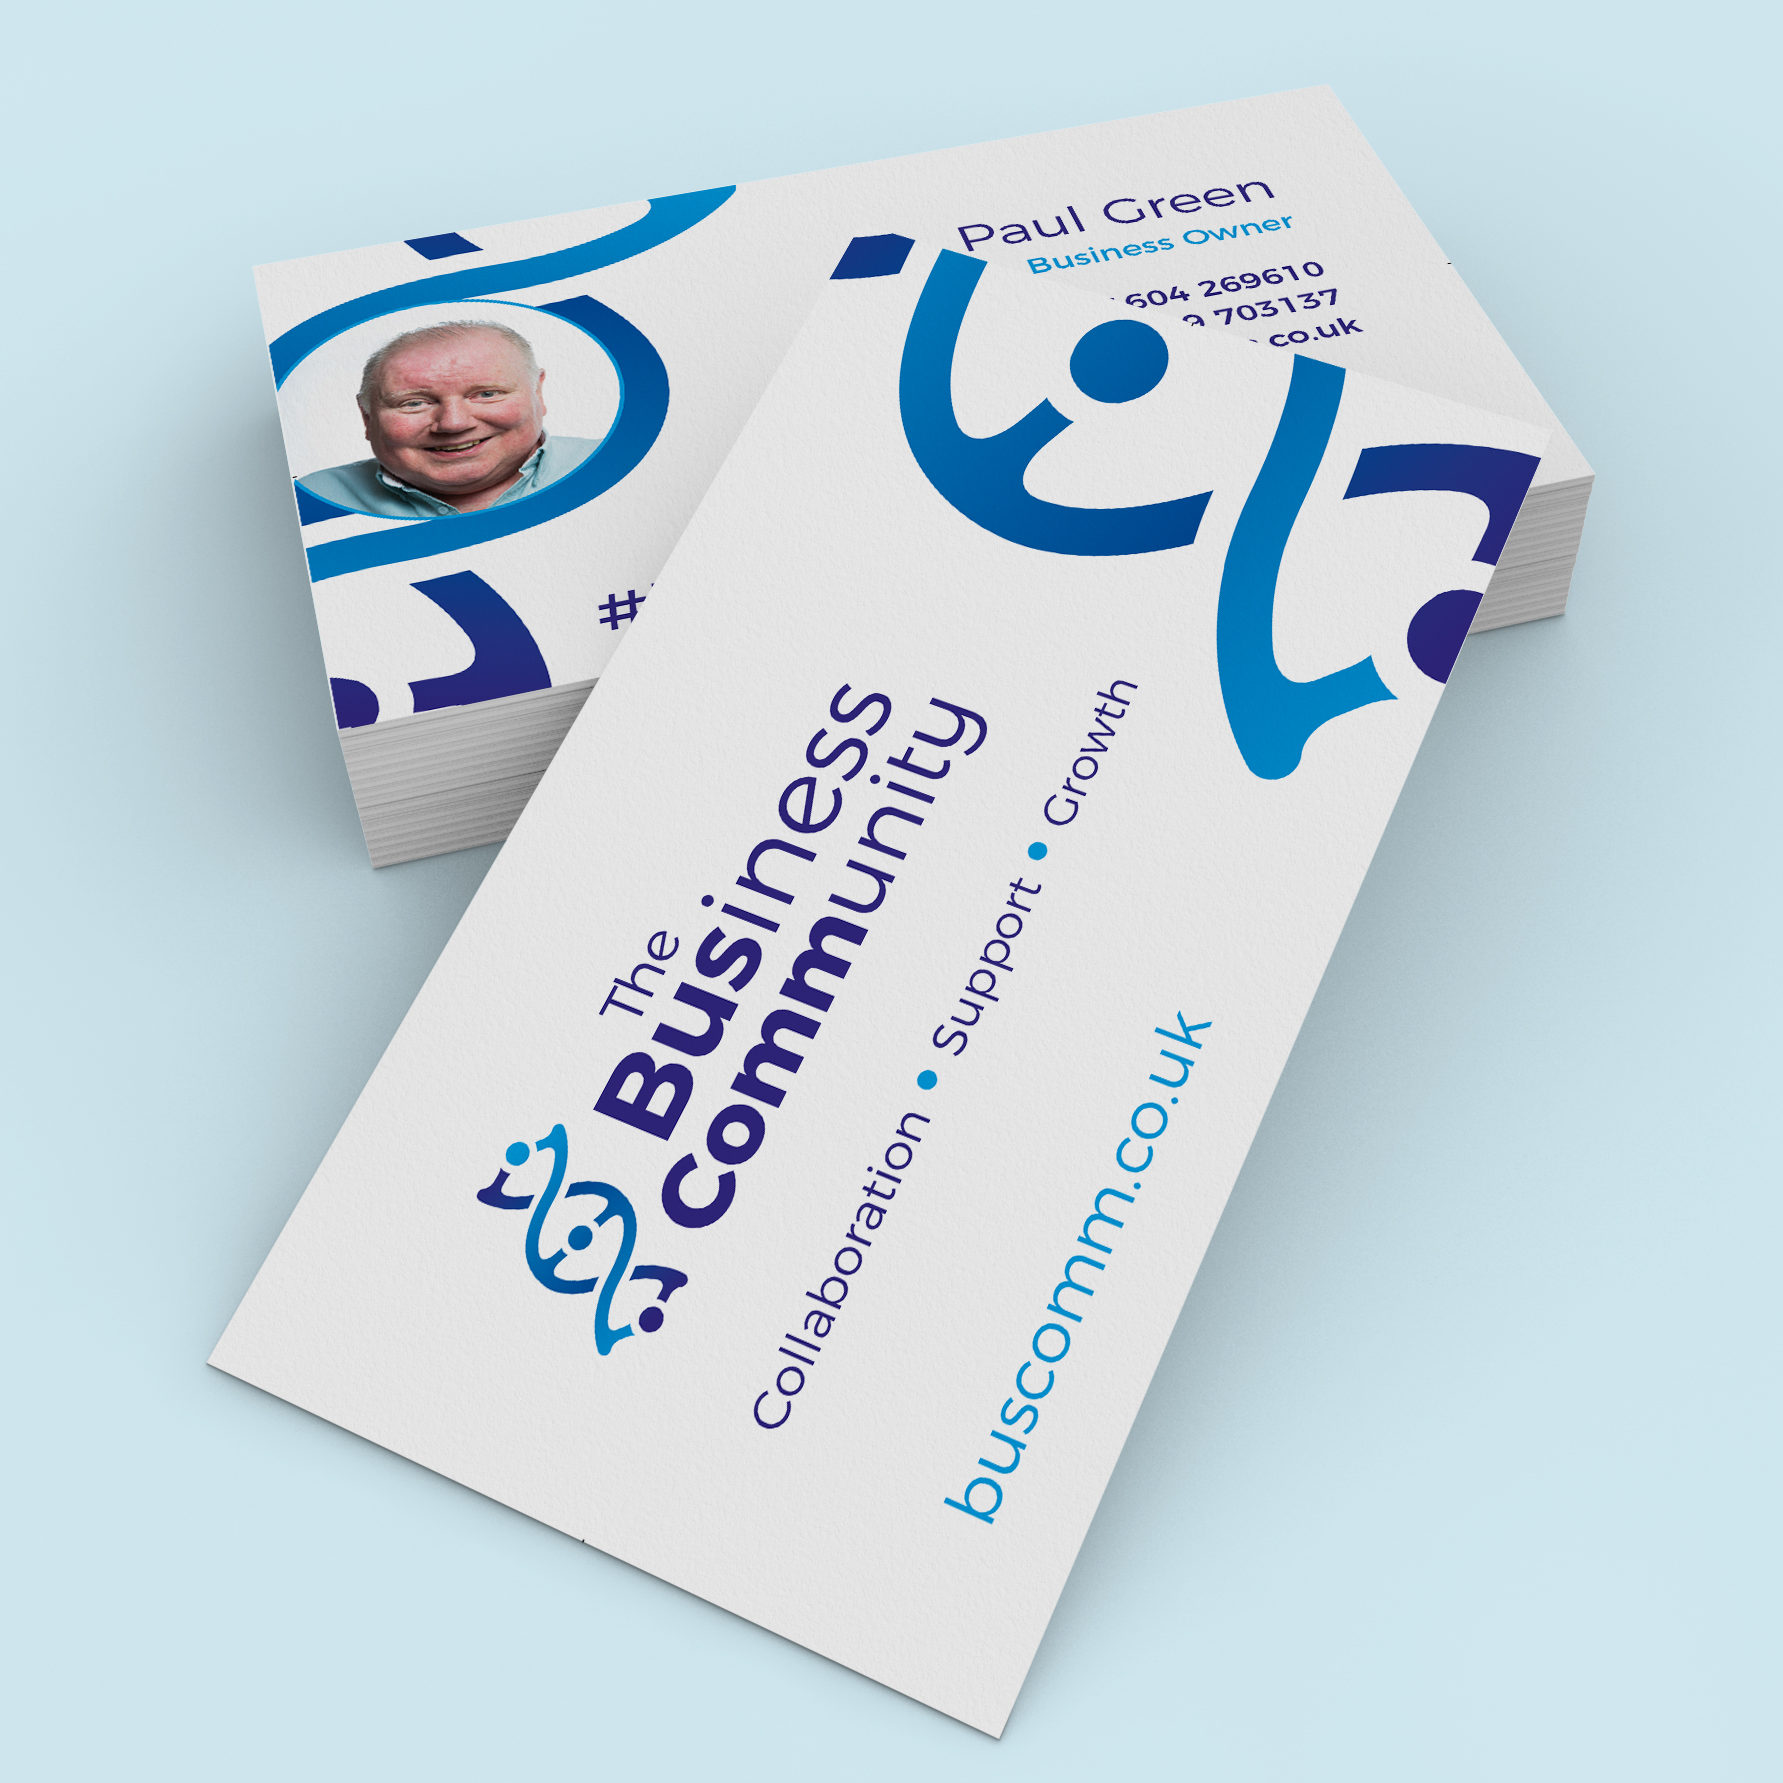 Business cards design for The Business Community